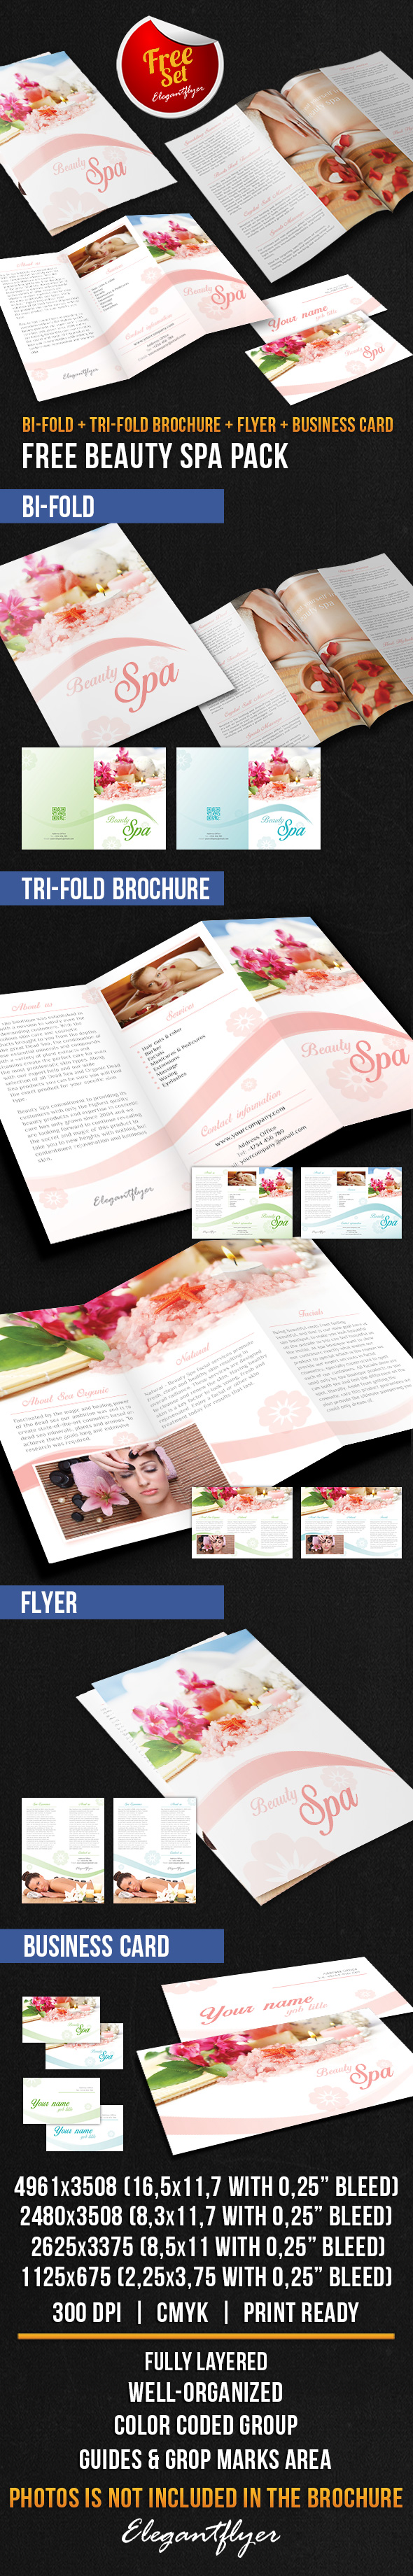 Beauty Spa Brochure Pack Free PSD Template Brochure Template - Free spa brochure templates